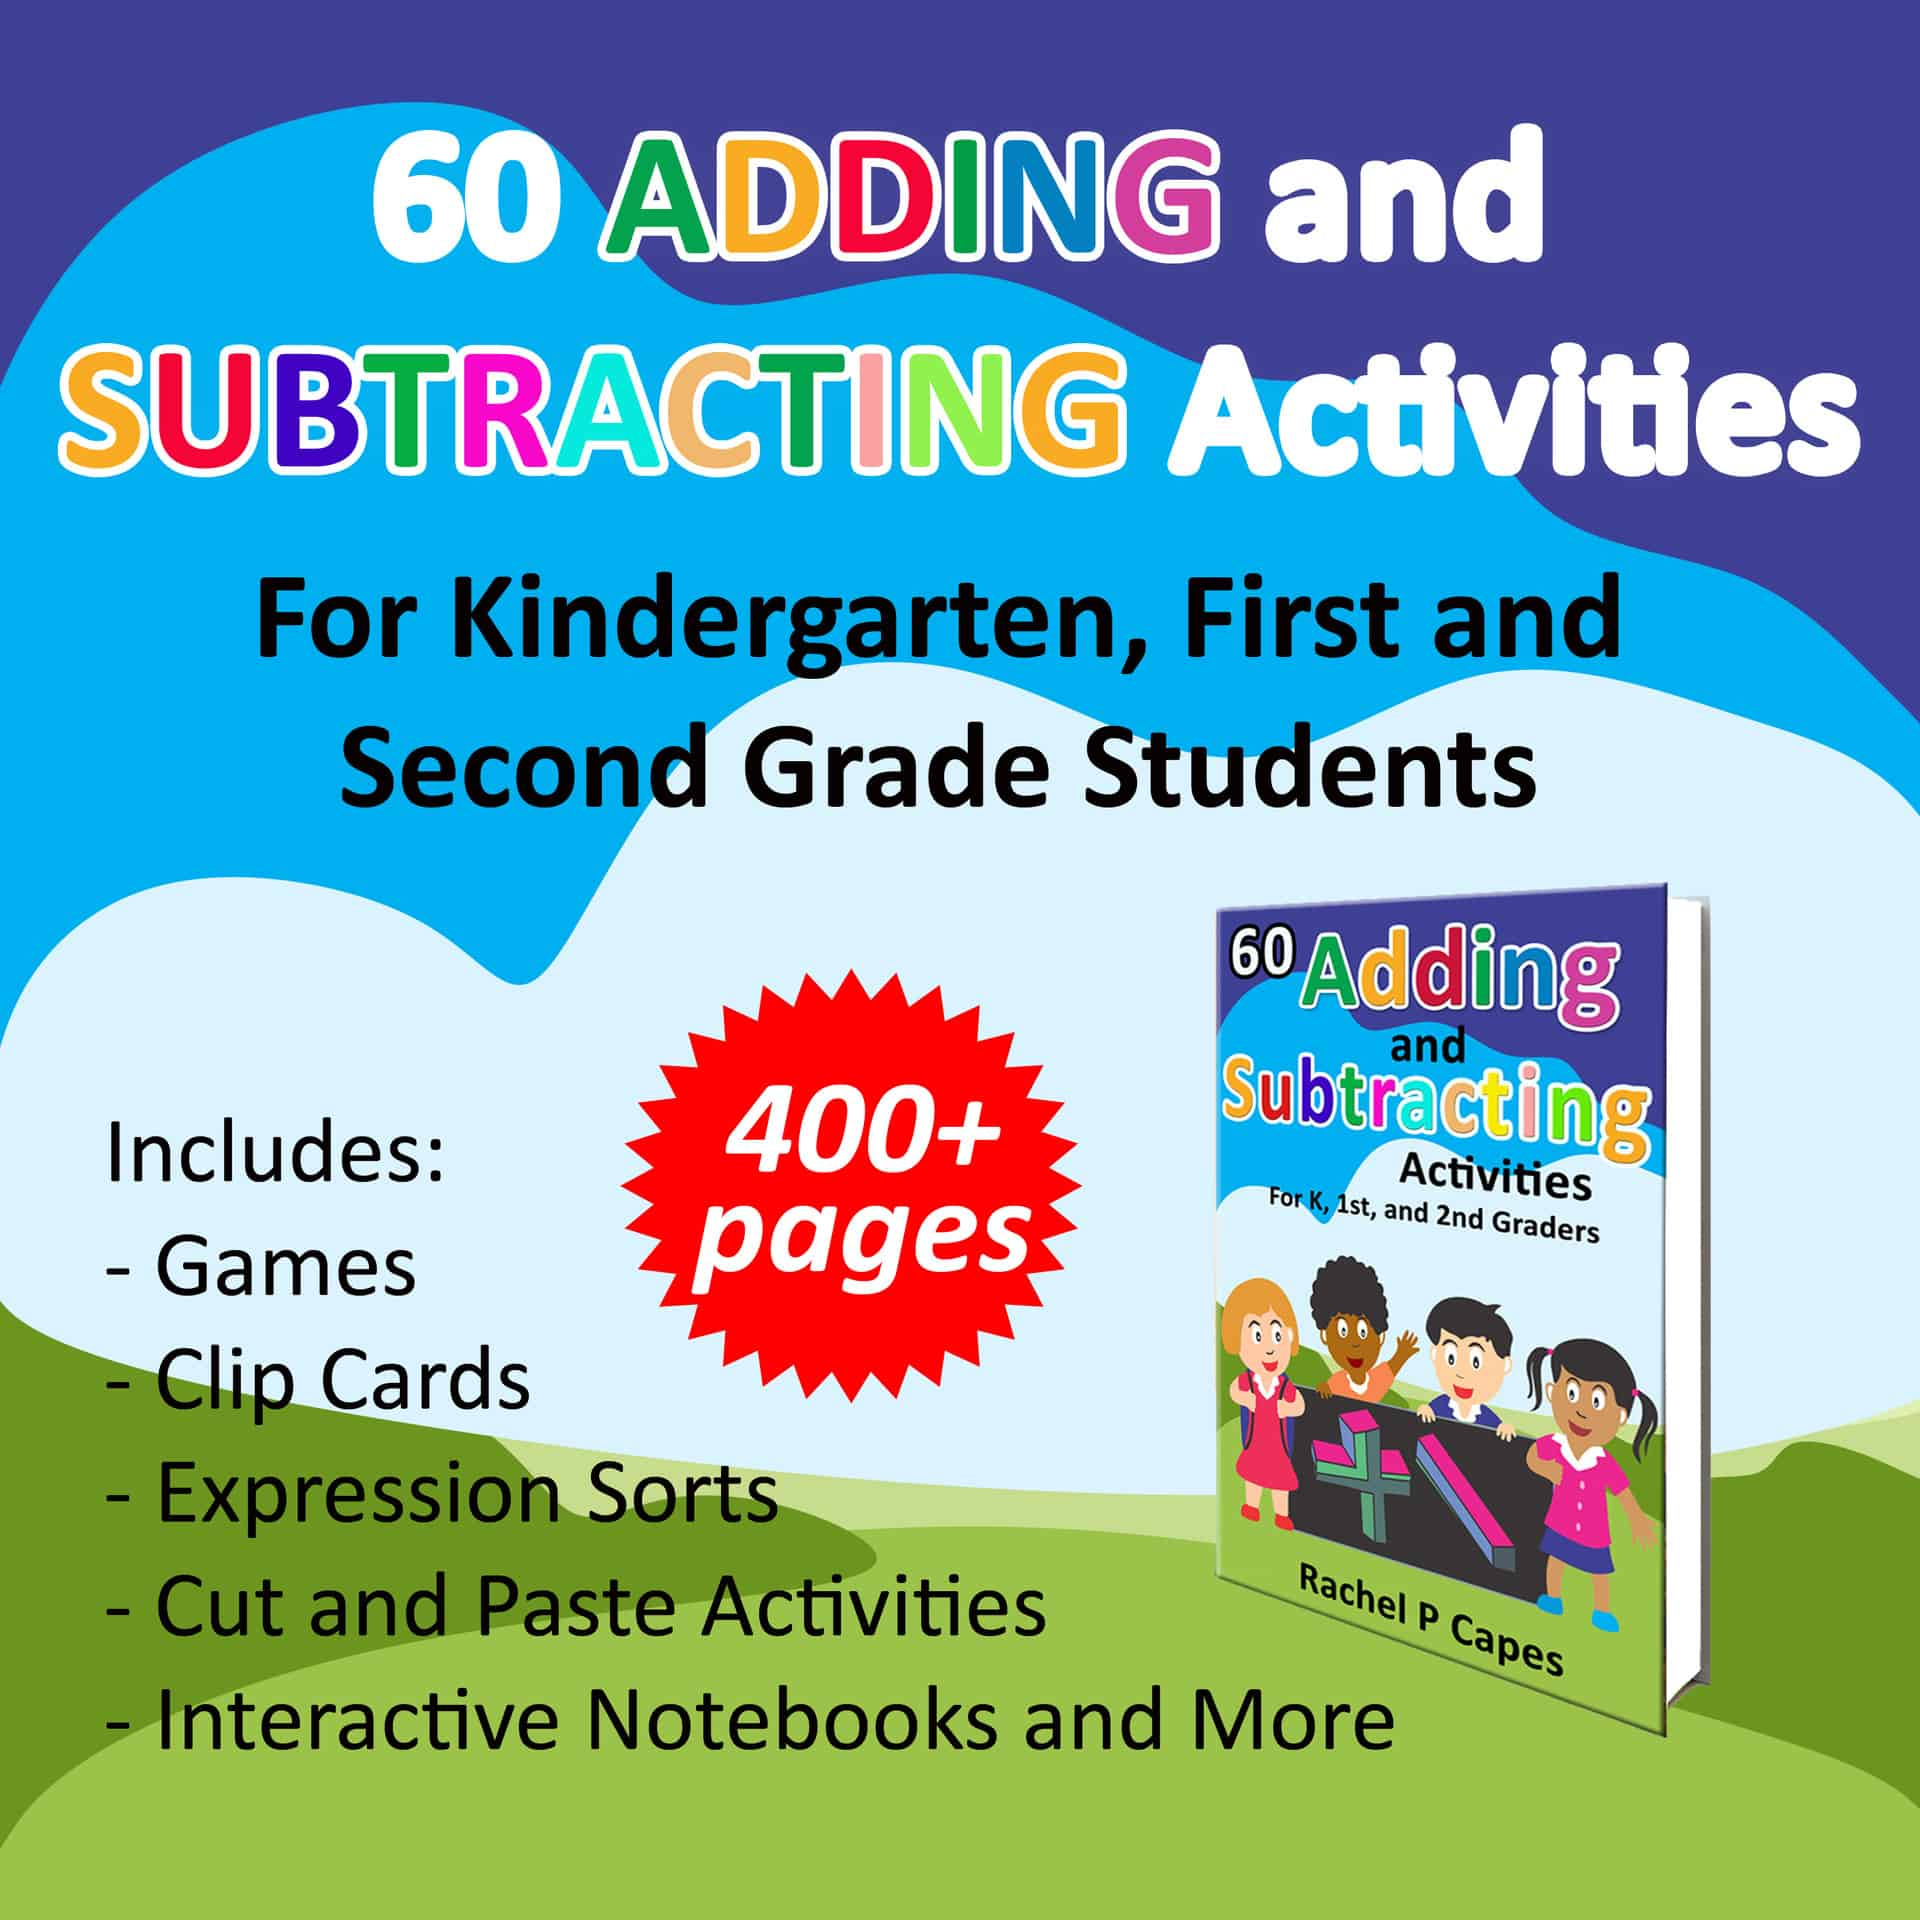 60 Adding and Subtracting Activities to Help Teach K, 1st, & 2nd Graders